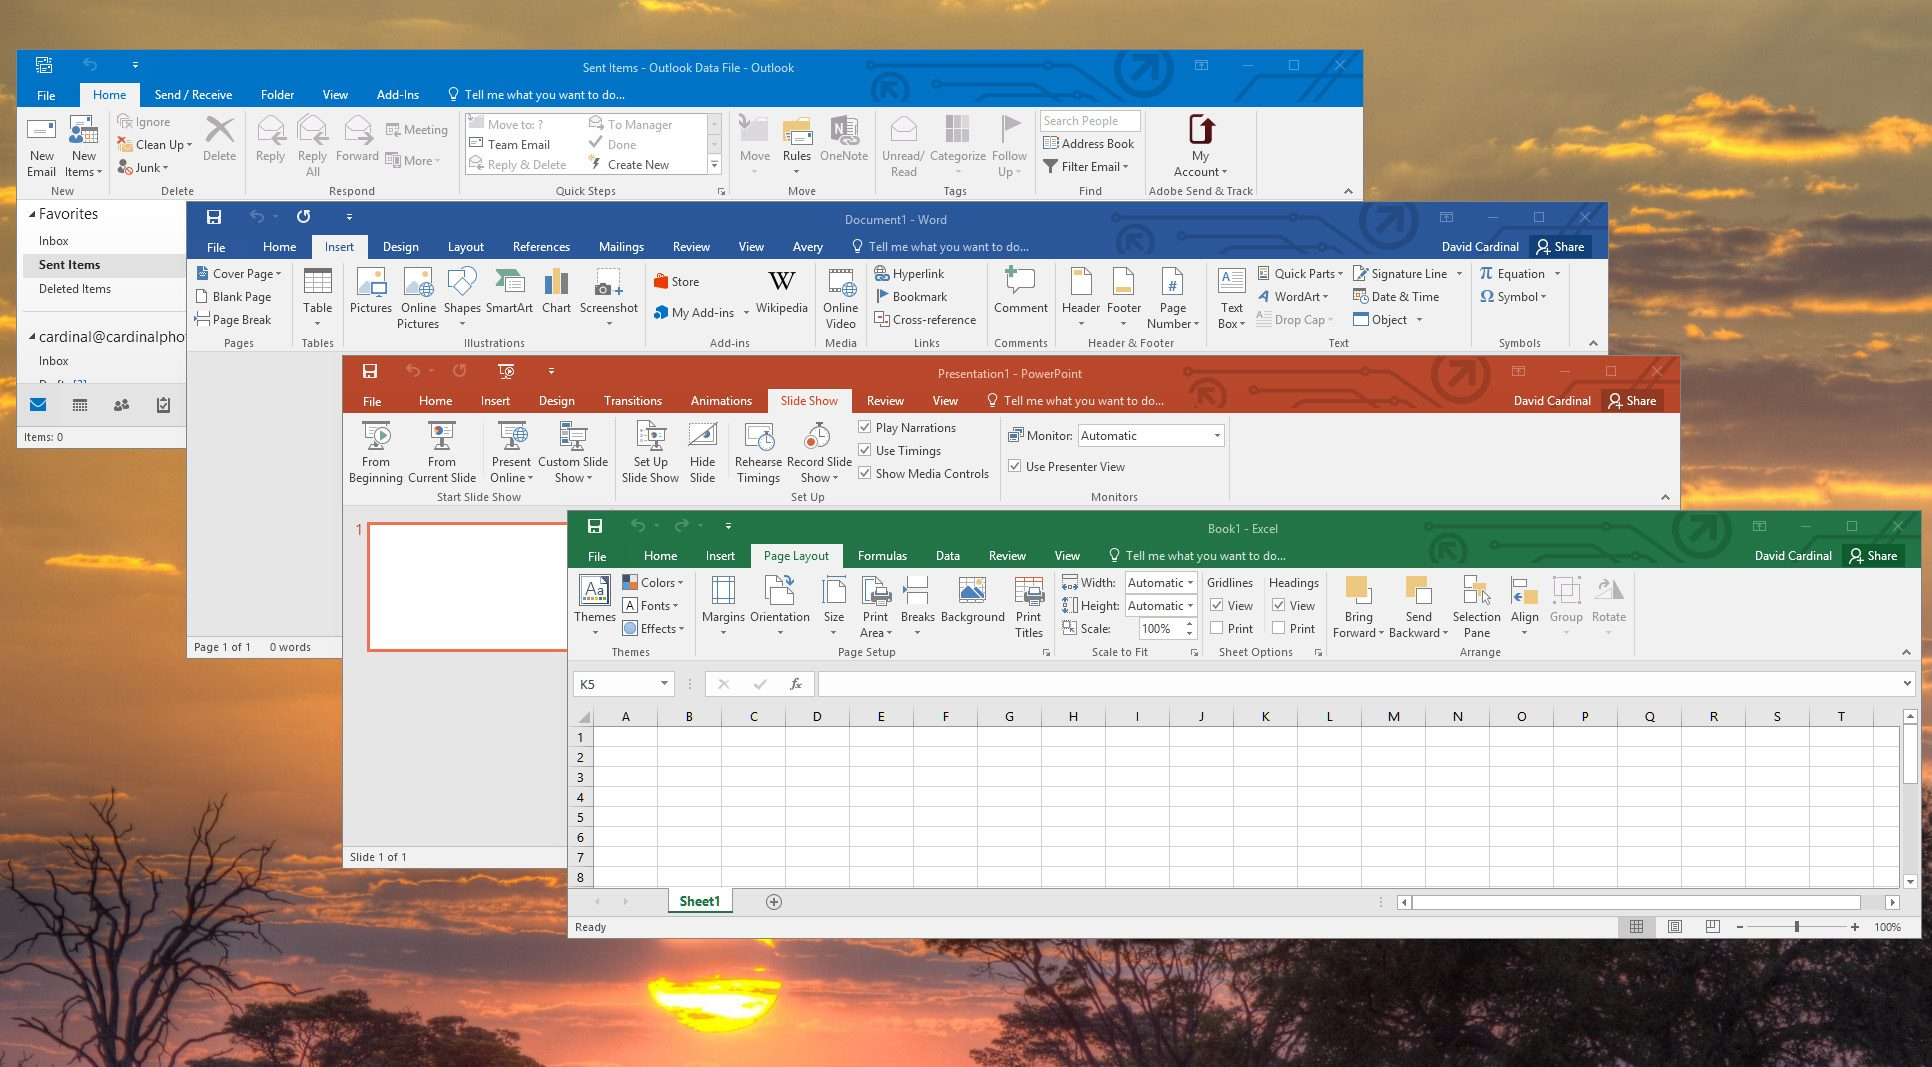 office-2016-preview-applications-look-nearly-the-same-as-those-found-in-office-2013-5793381